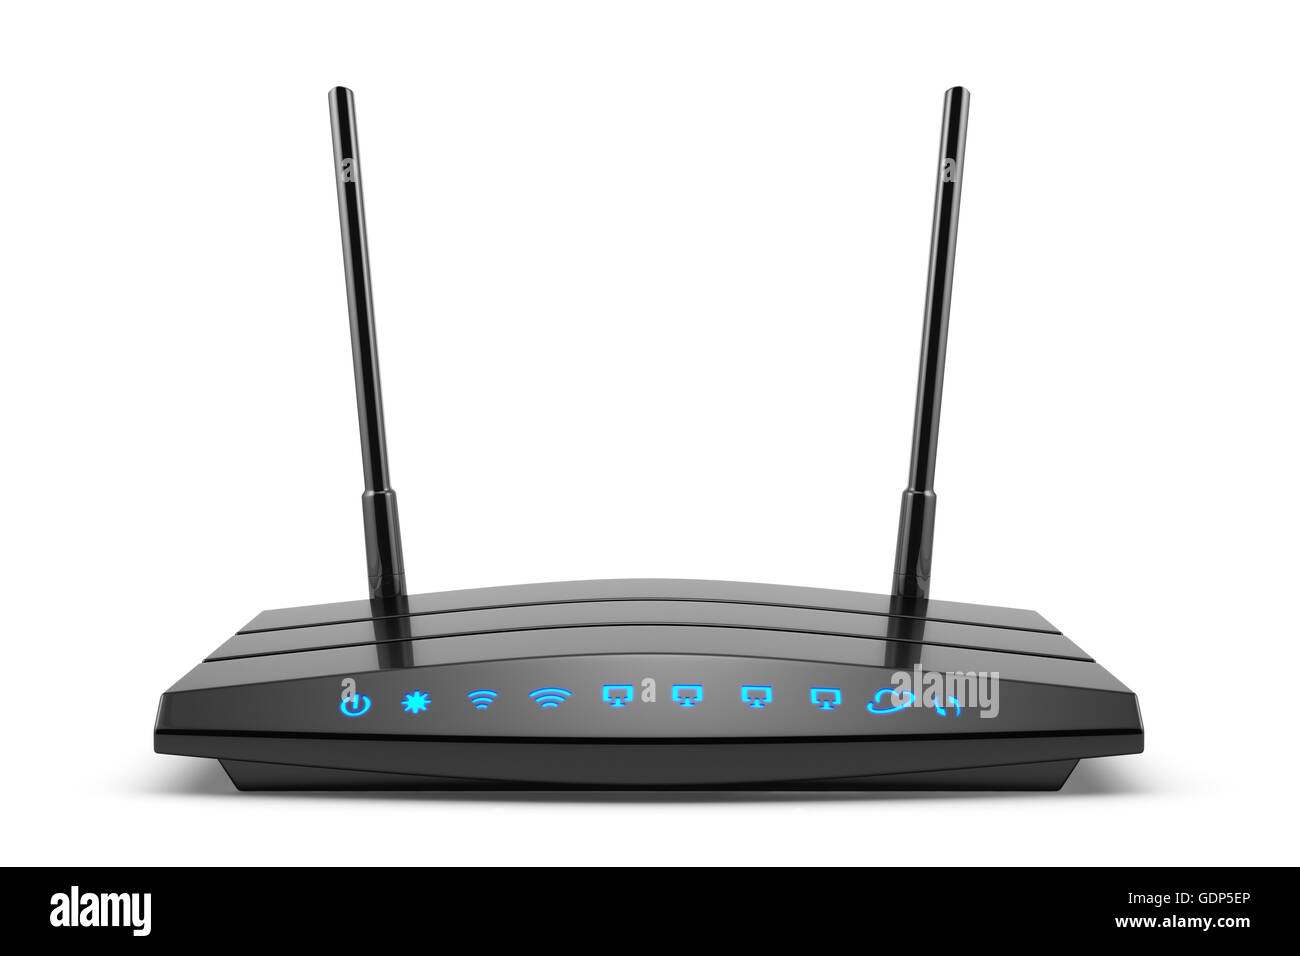 Wireless Broadband Router Stockfotos & Wireless Broadband Router ...